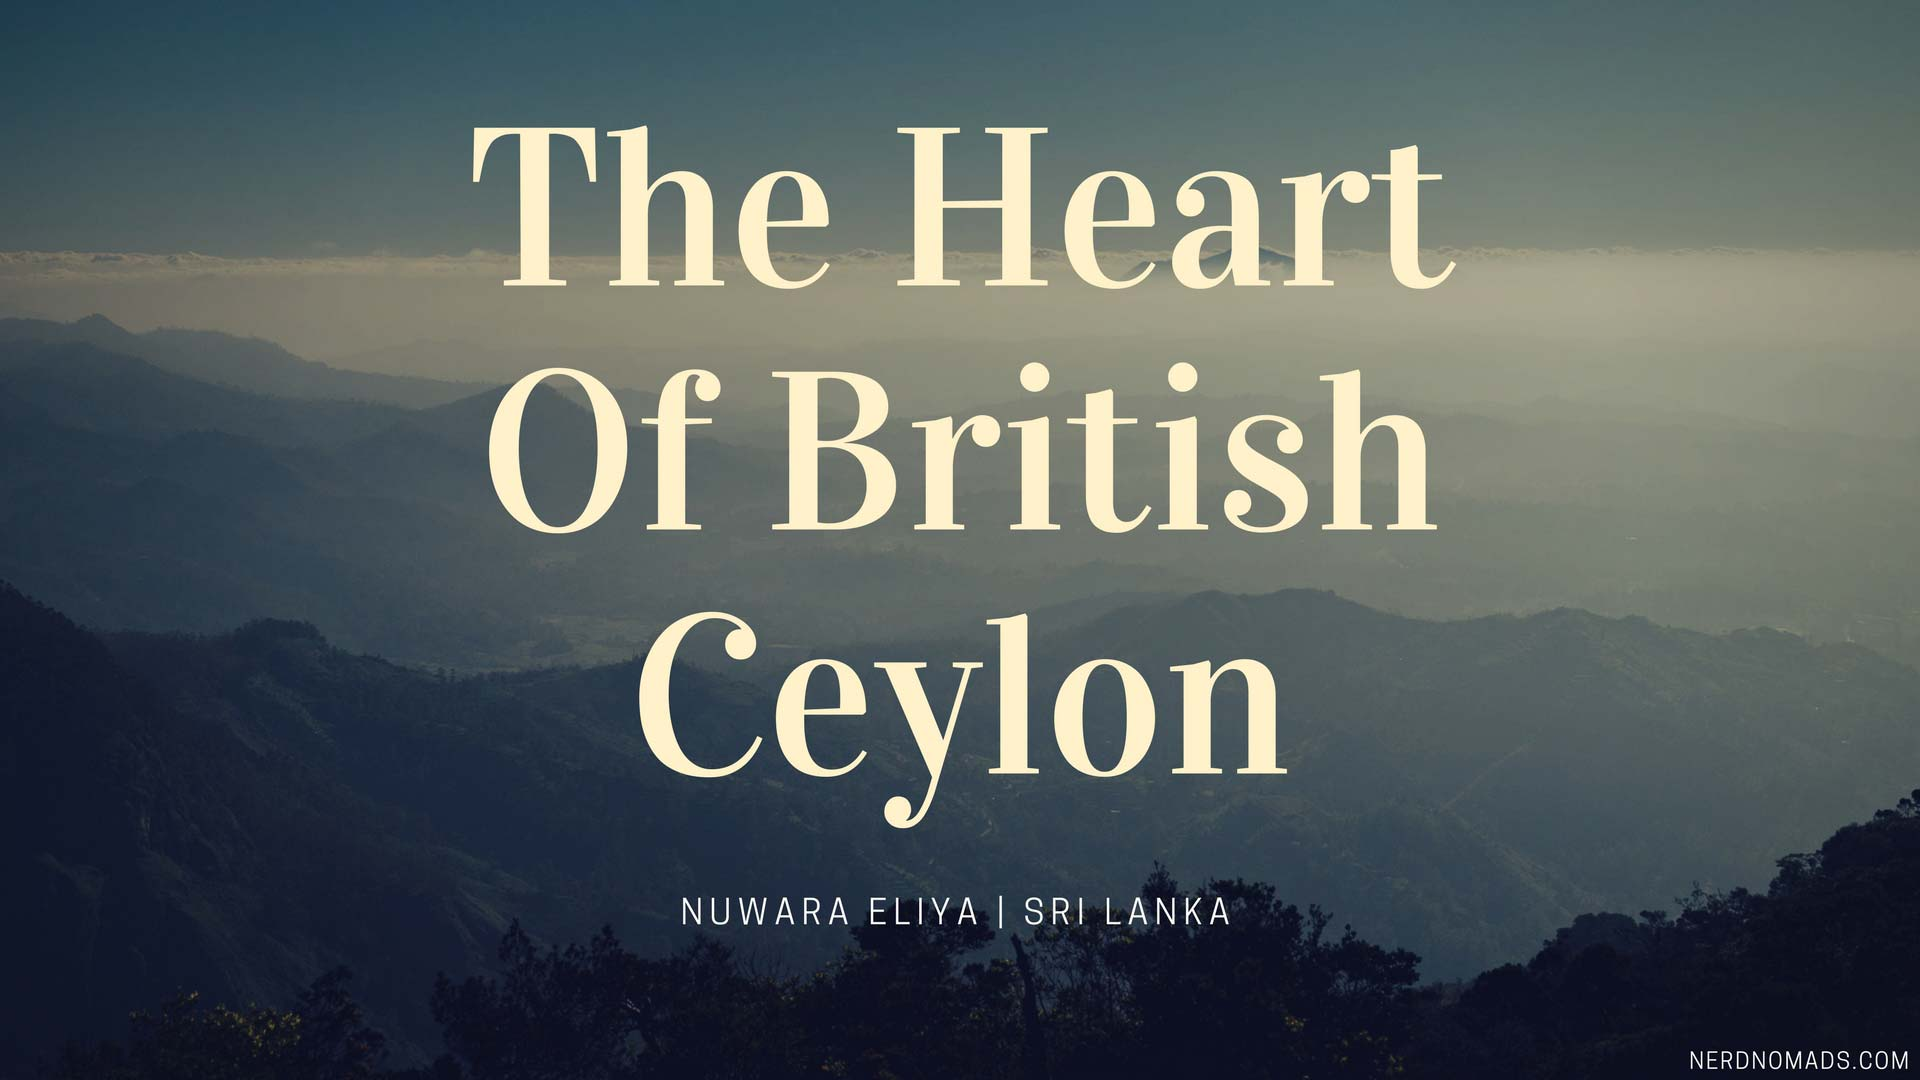 The Heart Of British Ceylon – Nuwara Eliya, Sri Lanka